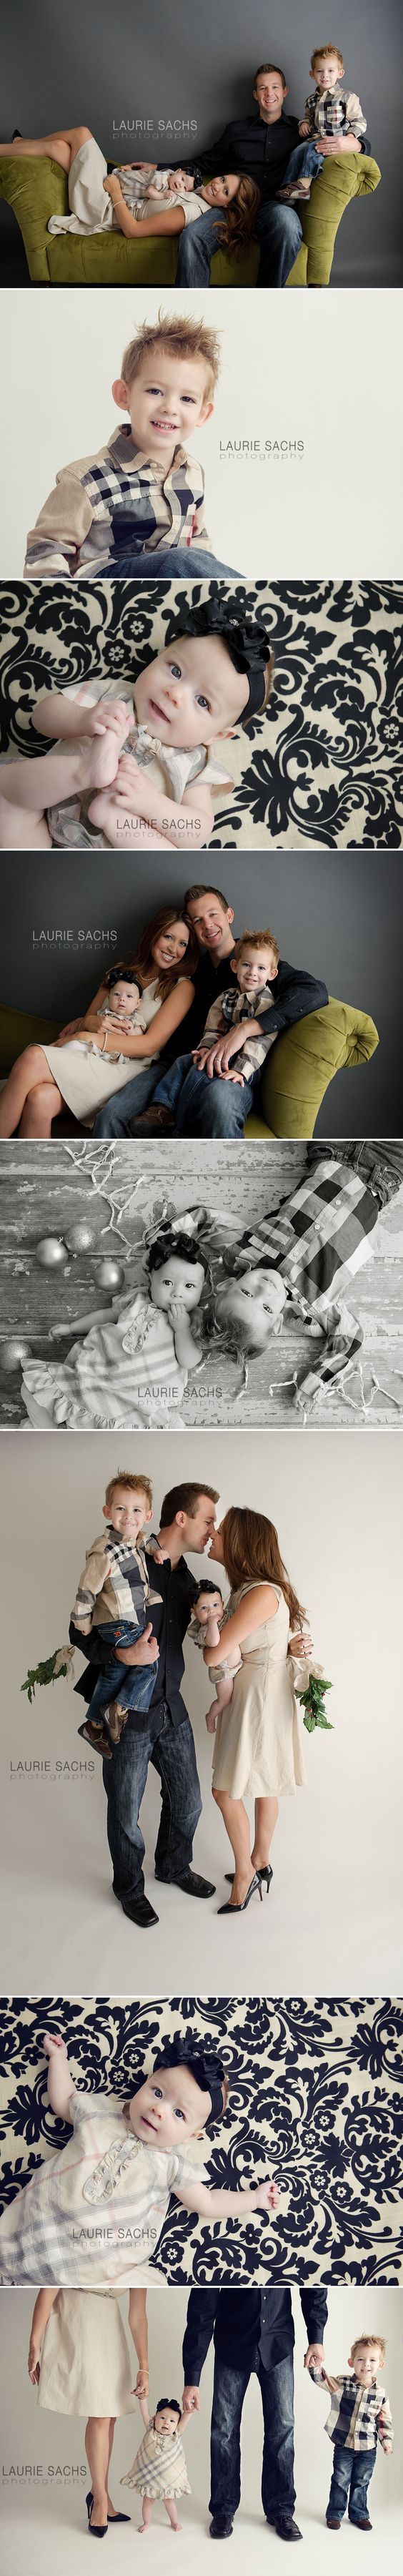 Family studio session done so well: Family Photography, Family Photos Studio Ideas, Christmas Shot, Family Studio Portrait, Photography Ideas